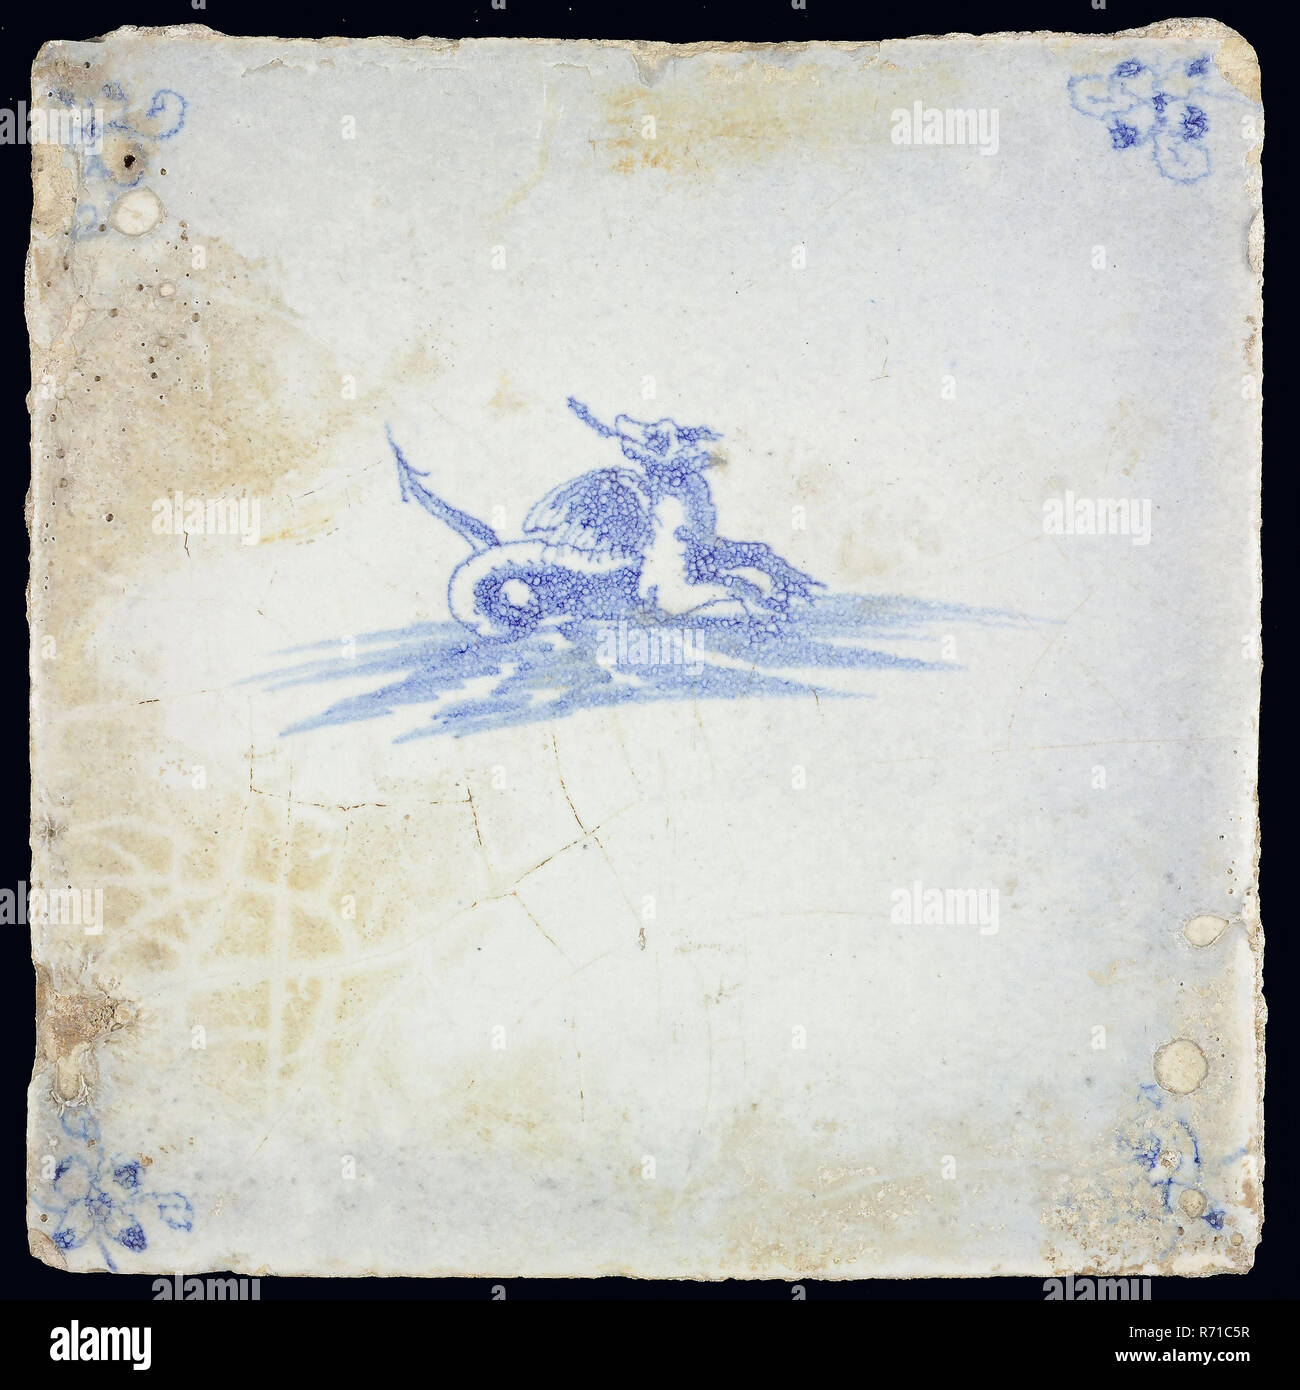 Sea creature tile, in blue on white, dragon-like creature with wings and pintail in water to the right, corner pattern spider, wall tile tile sculpture ceramic earthenware glaze, baked 2x glazed painted mythology - Stock Image